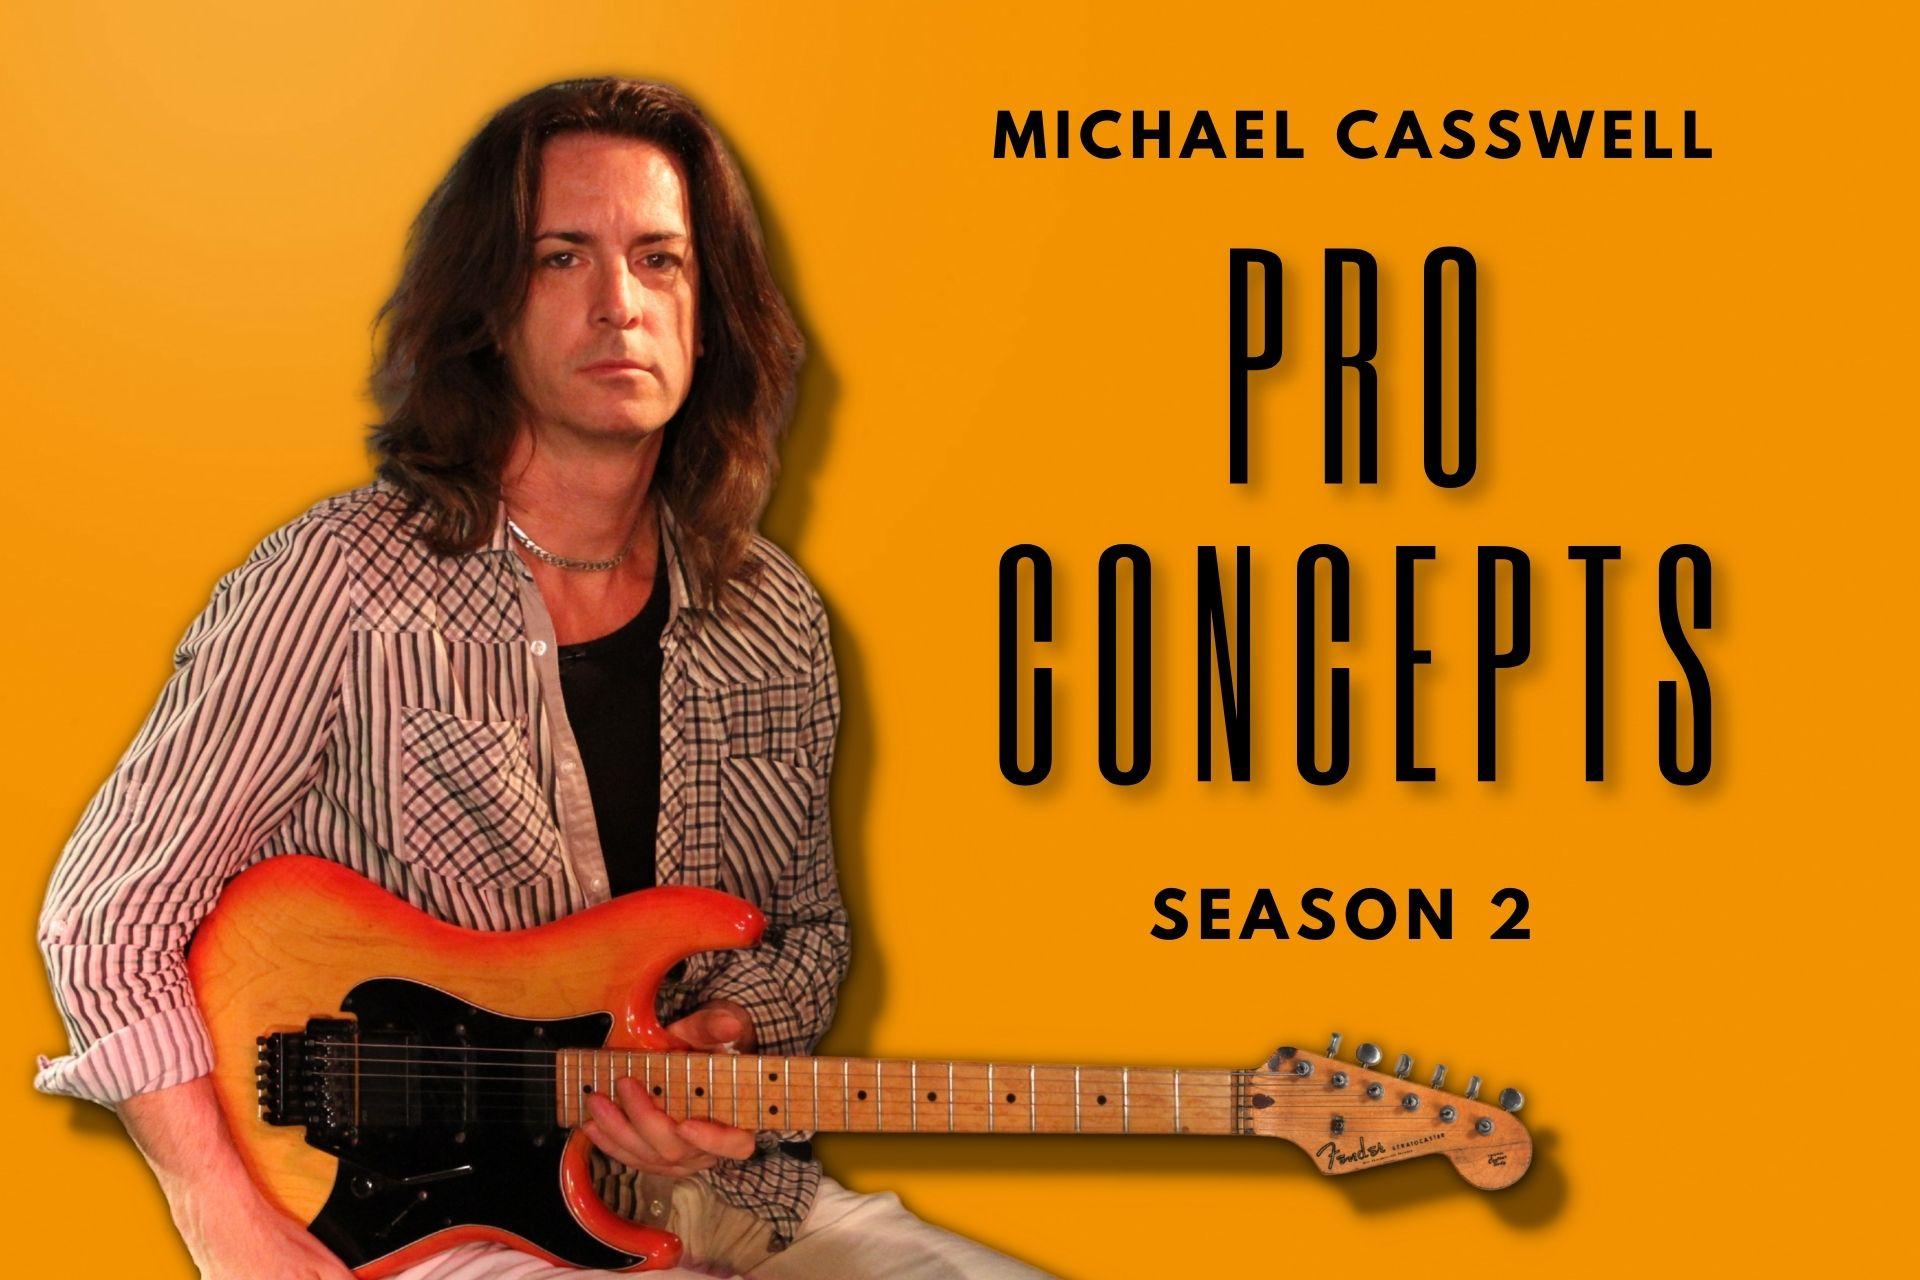 Michael Casswell - Pro Concepts - Season 2